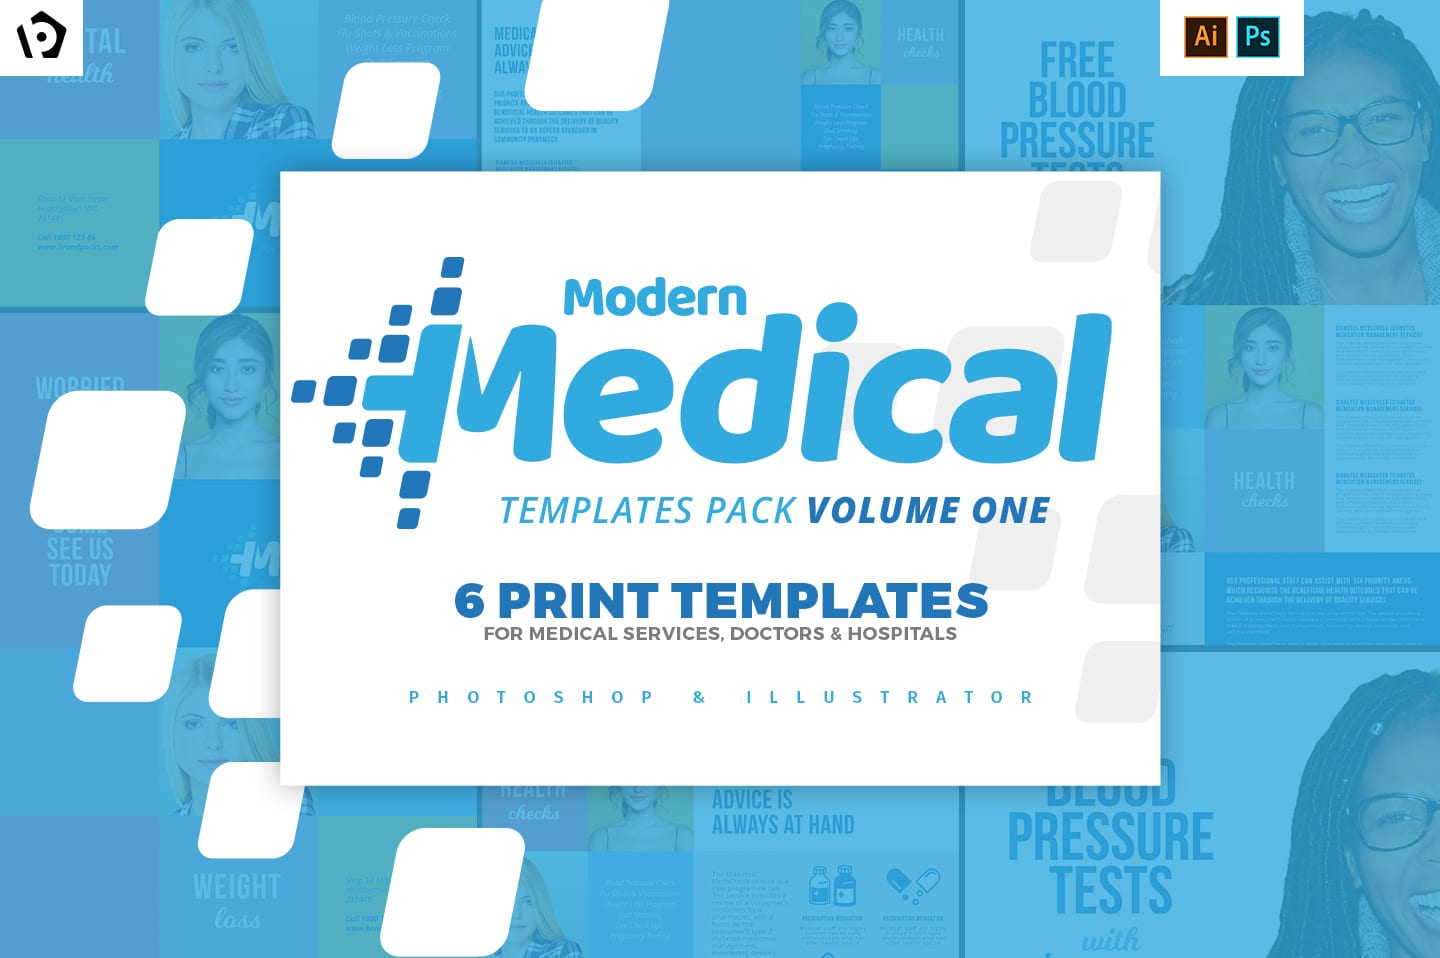 Modern Medical Templates Pack